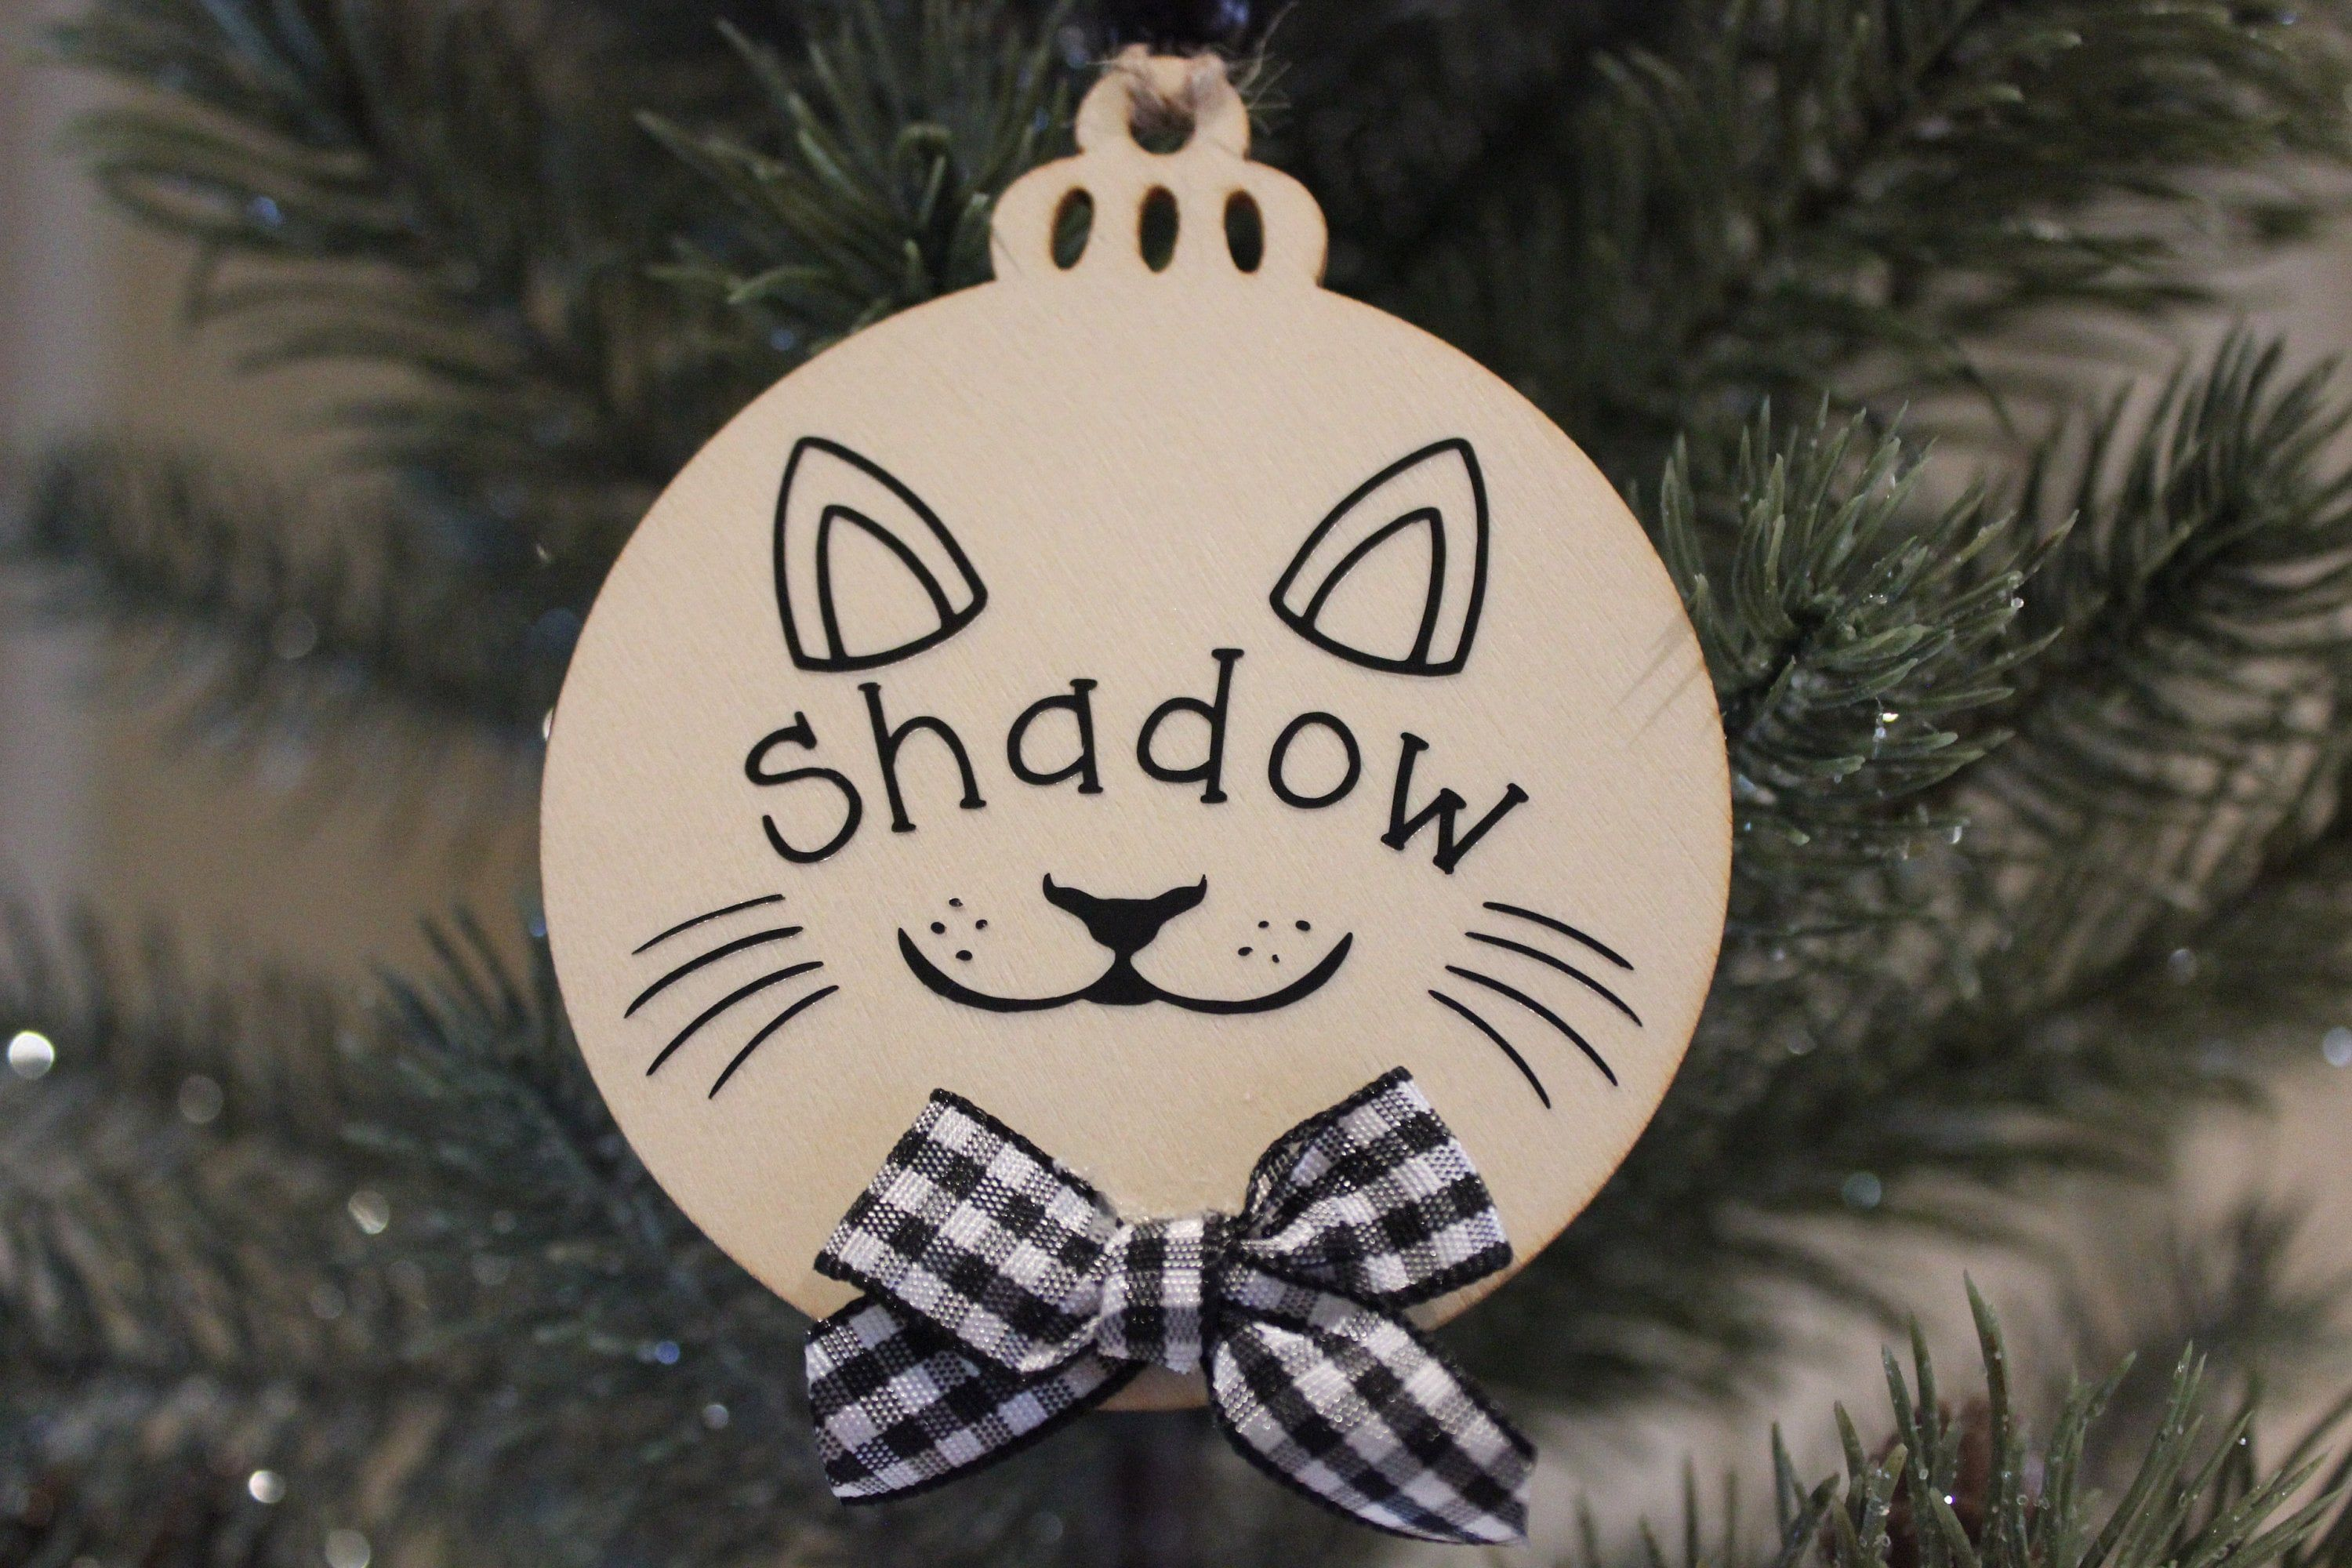 """""""The ornament is made of a natural wood, heat transfer vinyl, ribbon, wooden beads, and lots of love:). They are 3.54\"""" x 2.87\"""" and 2.5 mm thick. They come with jute twine string for easy hanging. All ornaments will come in a decorative bag for easy gift giving. *DISCLAIMERS* This is not a toy. For decoration only."""""""